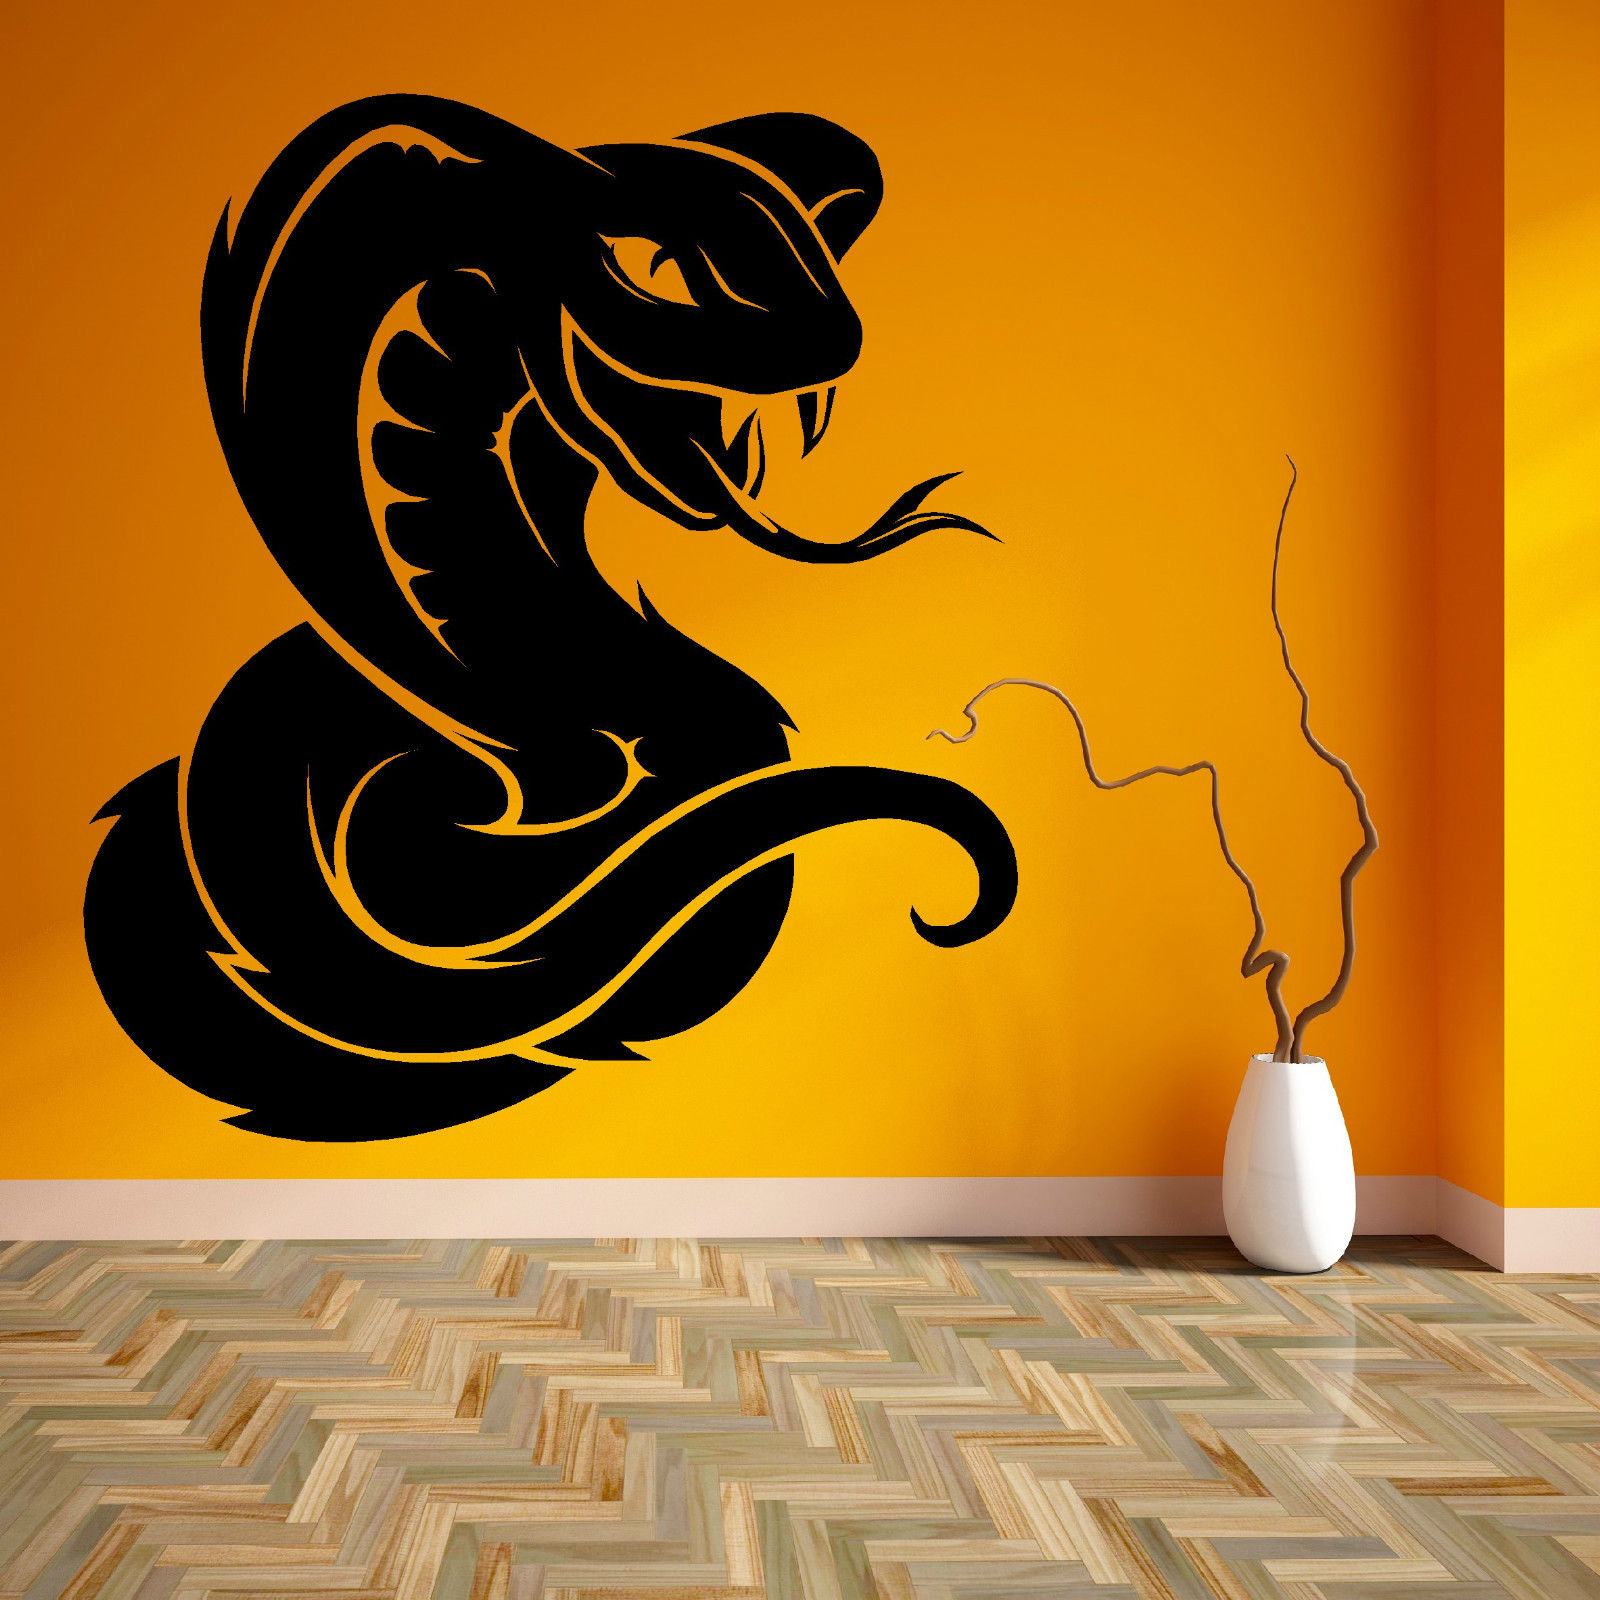 Buy cobra wall decals and get free shipping on AliExpress.com